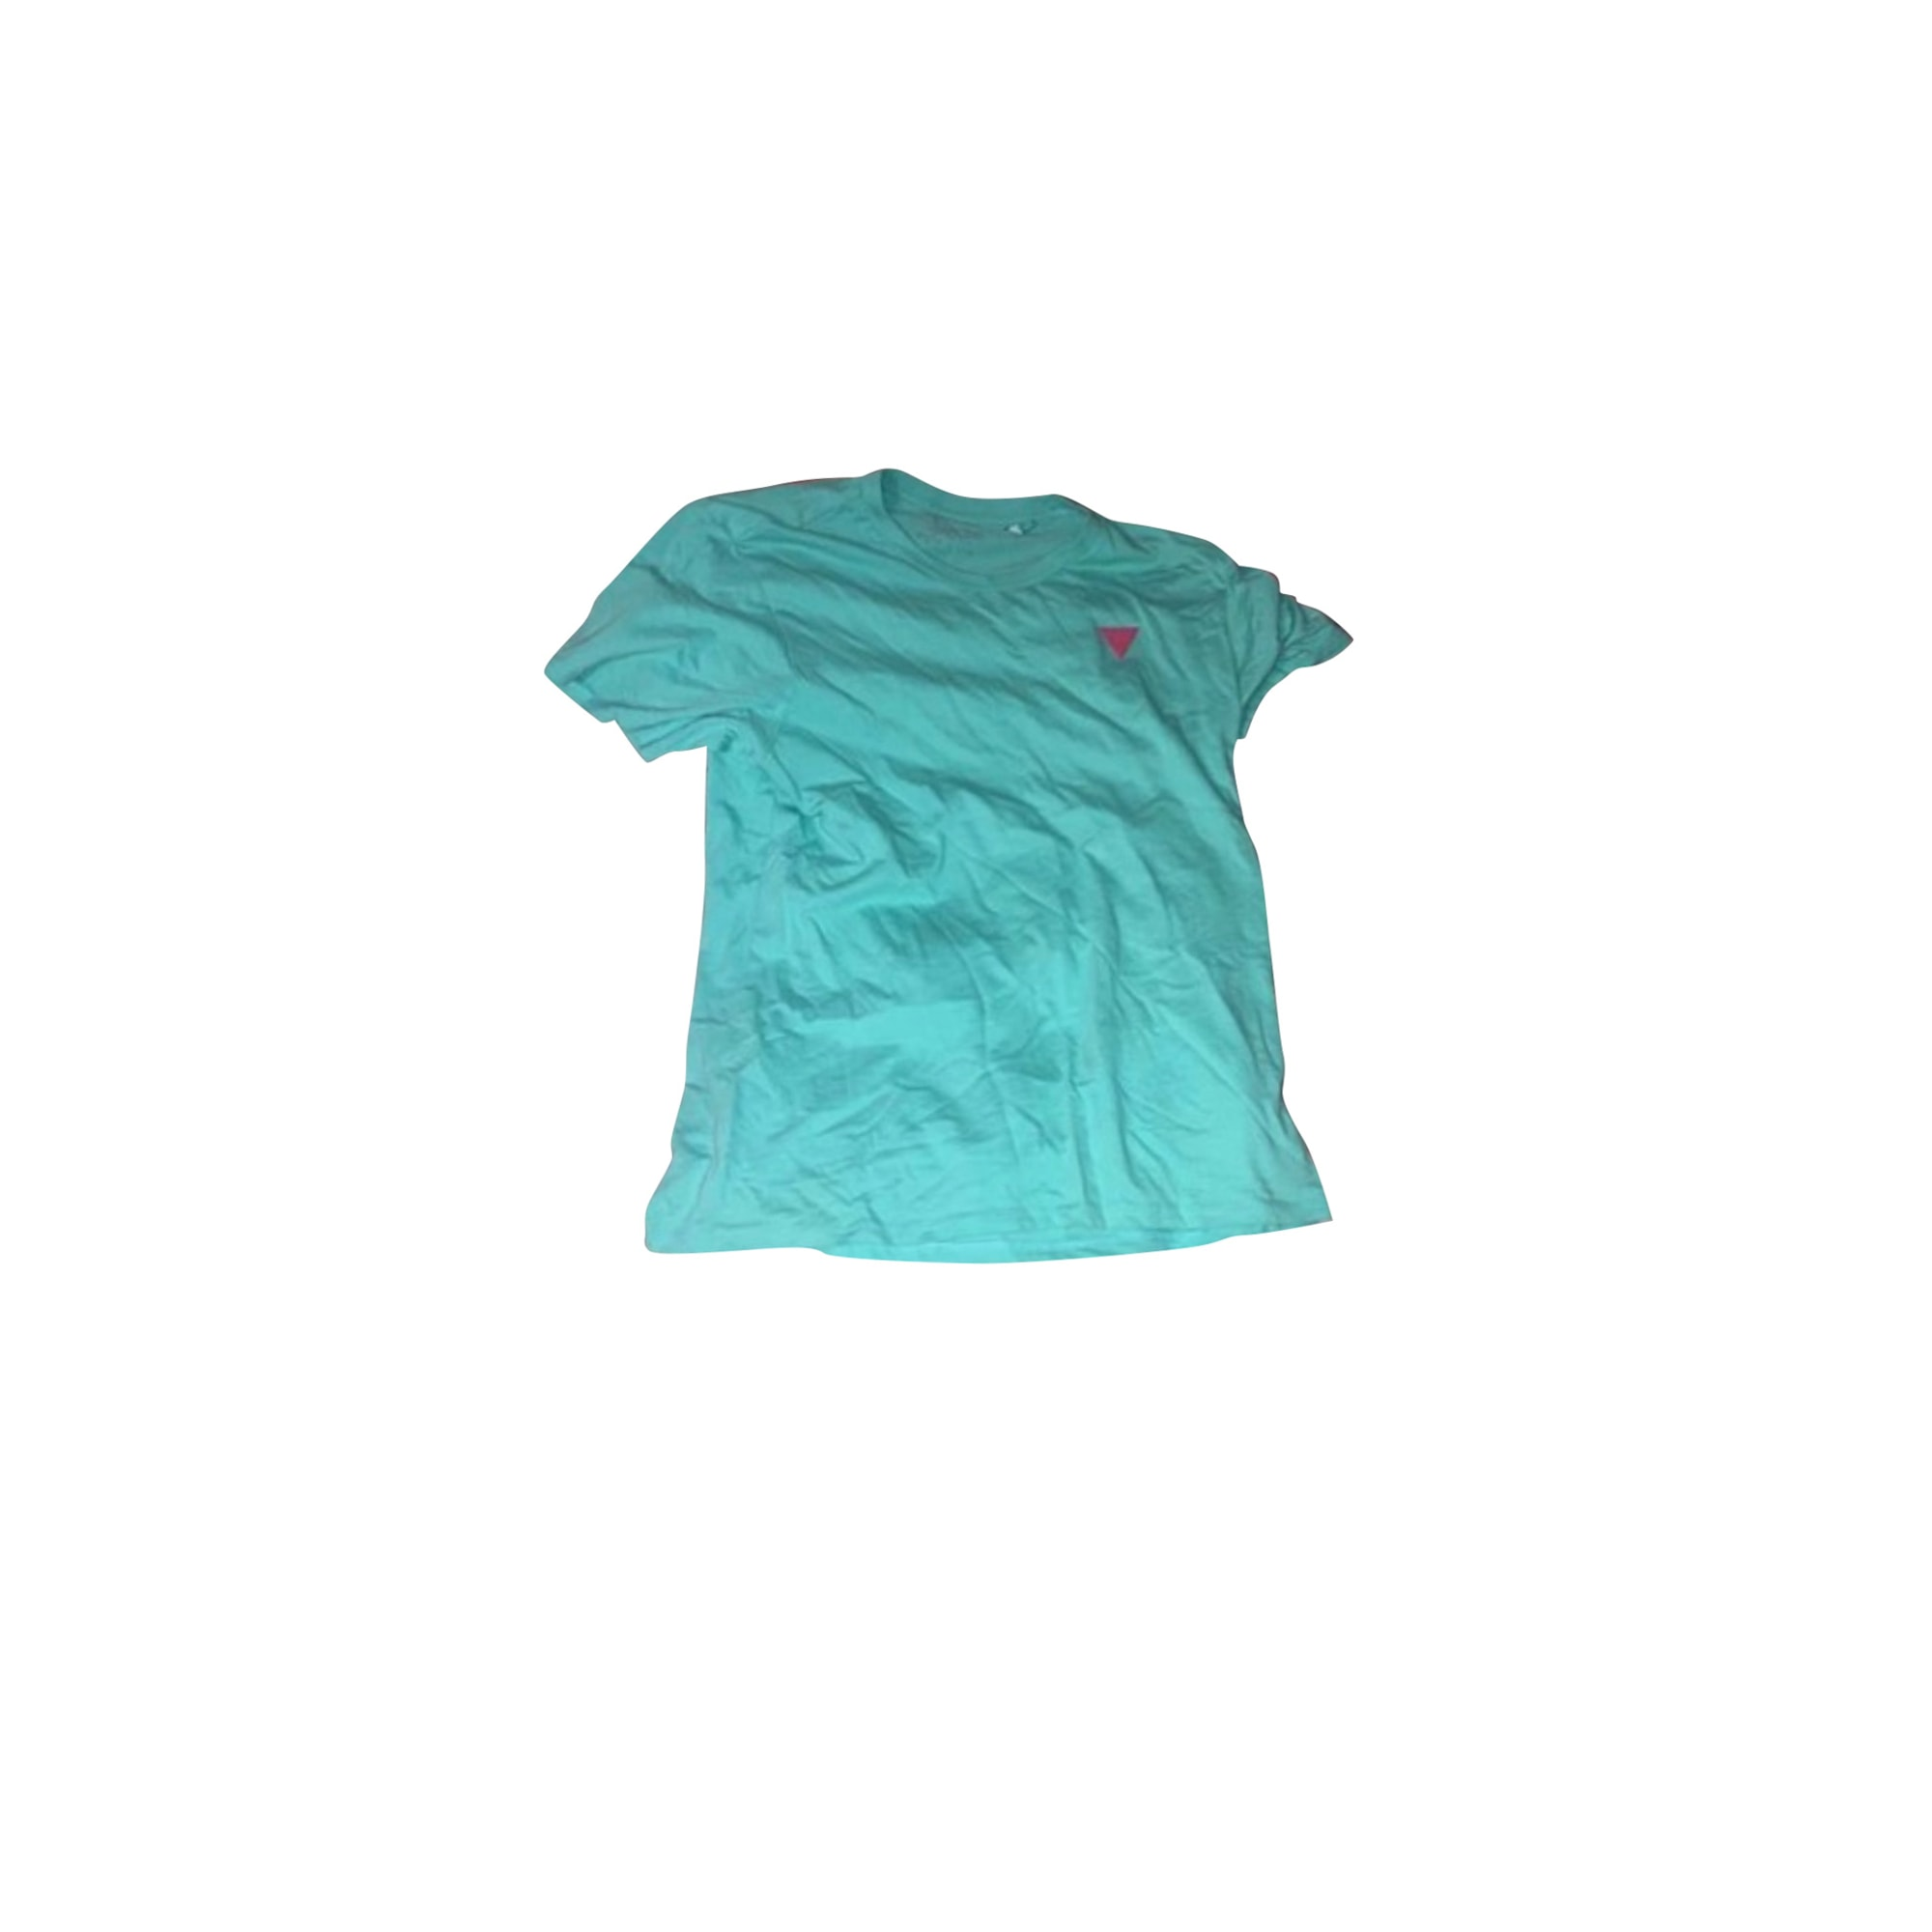 Shorts GUESS Blue, navy, turquoise